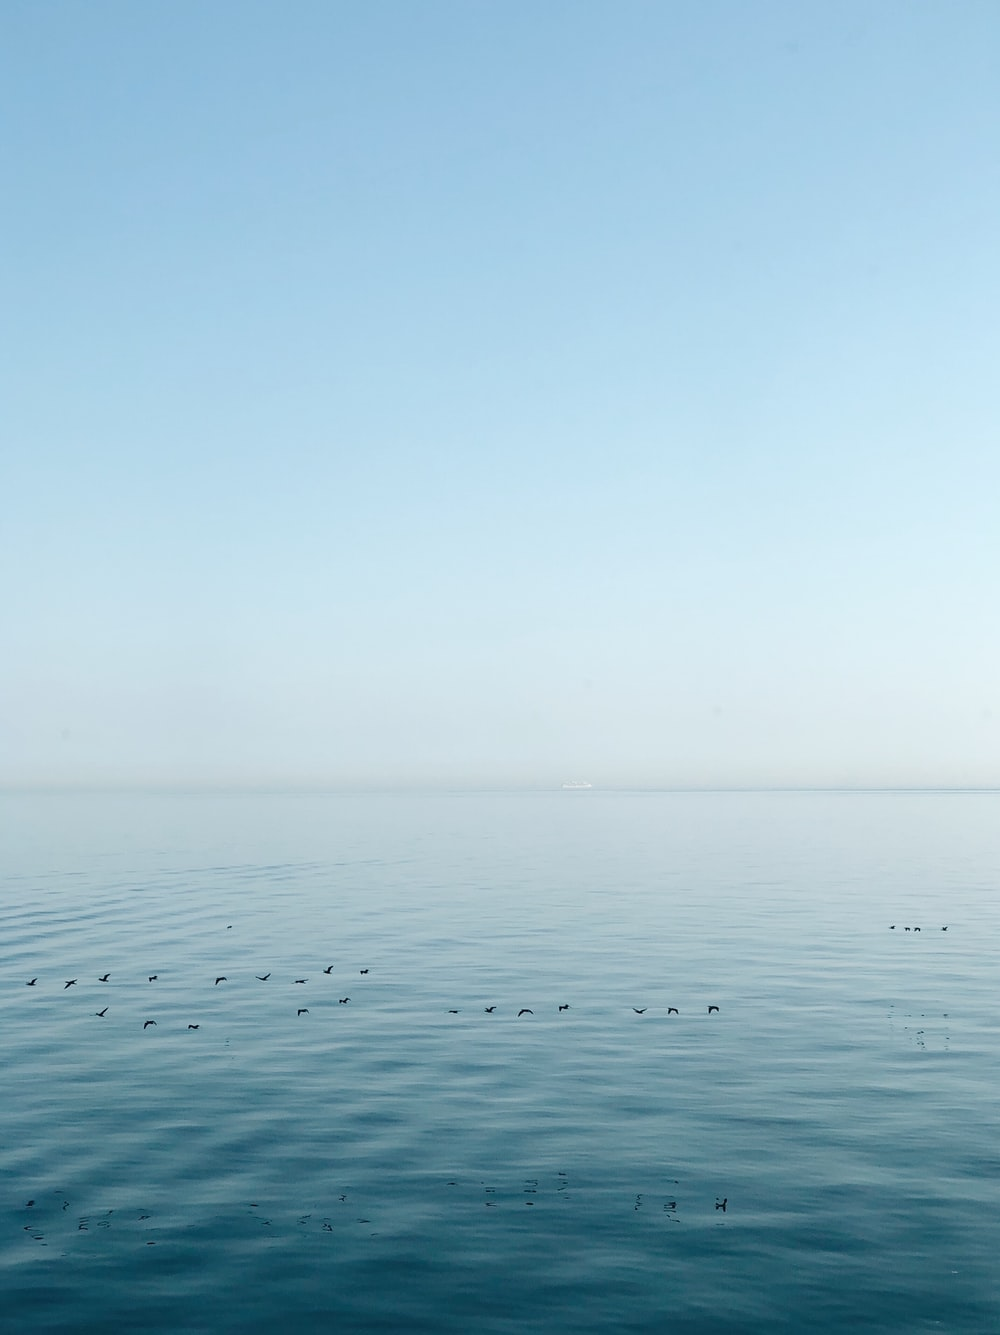 birds flying above calm ocean